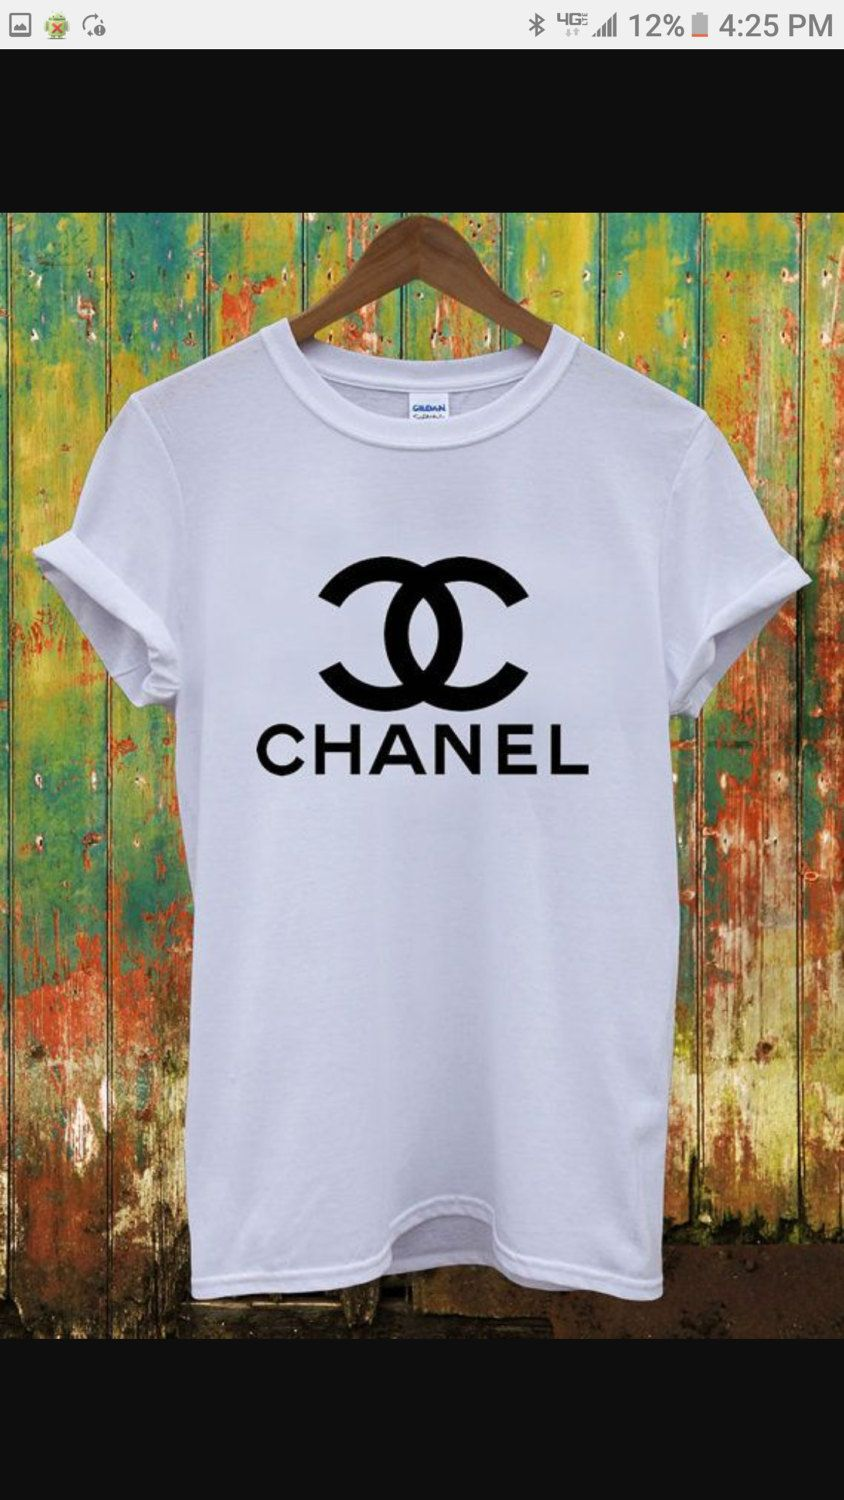 5eedab94a31bb7 Chanel inspired t shirt, white t shirt with black logo, women's graphic  tees, Chanel, sizes small to 4x! Too selling t shirts by DropsofJupiter07  on Etsy